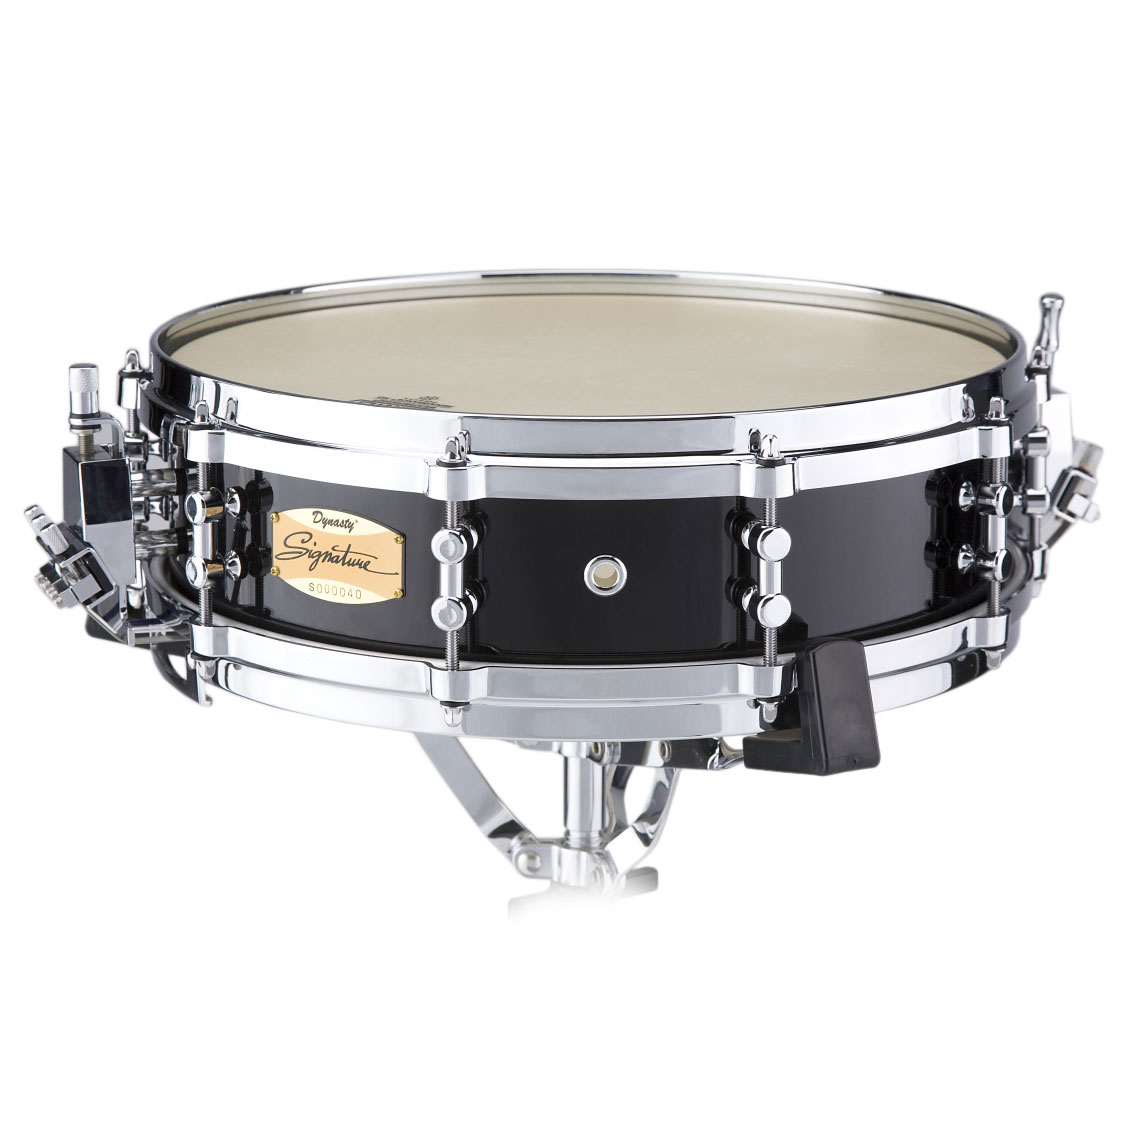 "Dynasty 14"" x 4"" Signature Professional Series Concert Snare Drum"